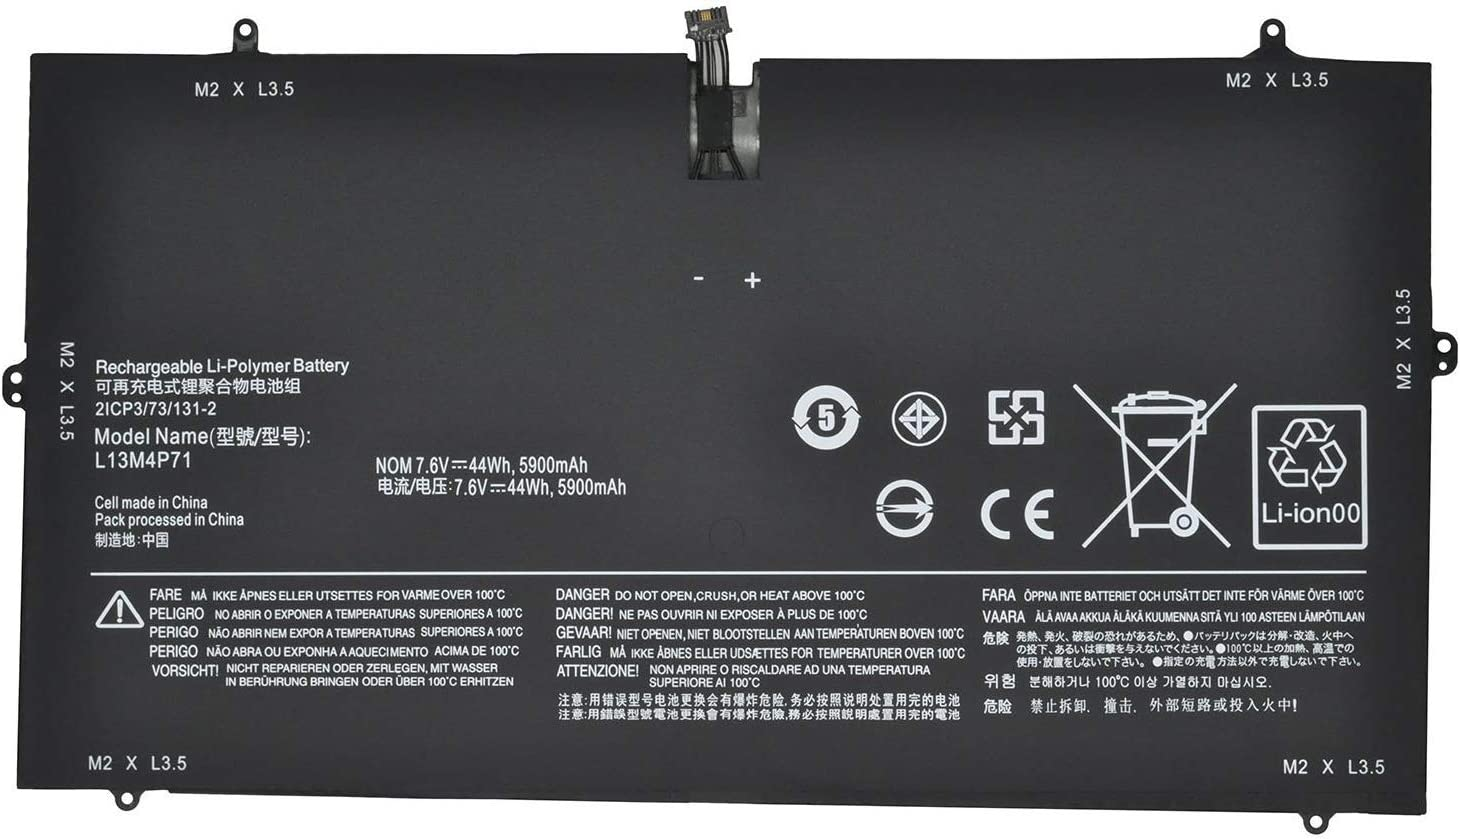 Fully L13M4P71 Replacement Laptop Battery Compatible with Lenovo Yoga 3 Pro 1370 Series - 7.6V 44Wh/5790mAh